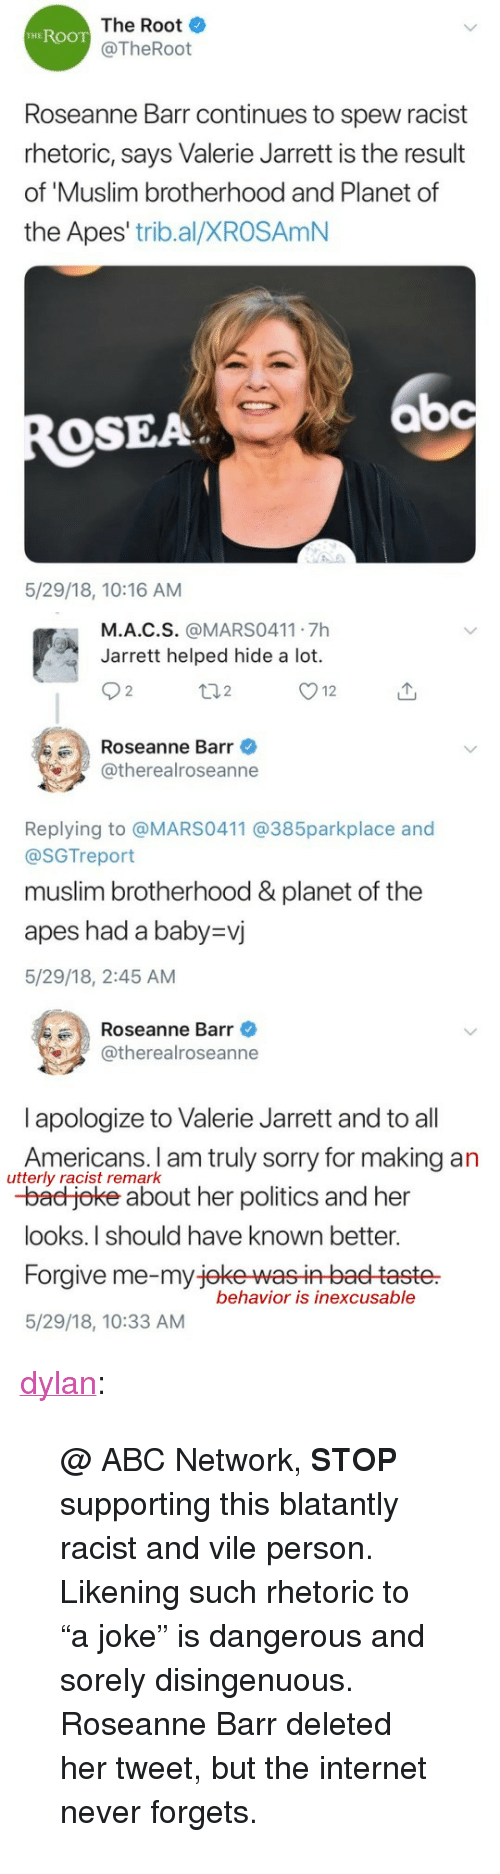 """Blatantly: The Root  @TheRoot  HEROOT  Roseanne Barr continues to spew racist  rhetoric, says Valerie Jarrett is the result  of 'Muslim brotherhood and Planet of  the Apes' trib.al/XROSAmN  bc  OSEA  5/29/18, 10:16 AM   M.A.C.S. @MARS0411 7h  Jarrett helped hide a lot.  2  2  Roseanne Barr  @therealroseanne  Replying to @MARS0411 @385parkplace and  @SGTreport  muslim brotherhood &planet of the  apes had a baby-vj  5/29/18, 2:45 AM   Roseanne Barr  @therealroseanne  l apologize to Valerie Jarrett and to all  Americans. I am truly sorry for making an  -bad joke about her politics and her  looks.I should have known better.  Forgive me-my jeke wasin baet taste  5/29/18, 10:33 AM  utterly racist remark  behavior is inexcusable <p><a href=""""https://dylan.tumblr.com/post/174371828198/abc-network-stop-supporting-this-blatantly"""" class=""""tumblr_blog"""">dylan</a>:</p><blockquote> <p>@ ABC Network, <b>STOP</b> supporting this blatantly racist and vile person.</p> <p>Likening such rhetoric to """"a joke"""" is dangerous and sorely disingenuous.</p> <p>Roseanne Barr deleted her tweet, but the internet never forgets.</p> </blockquote>"""